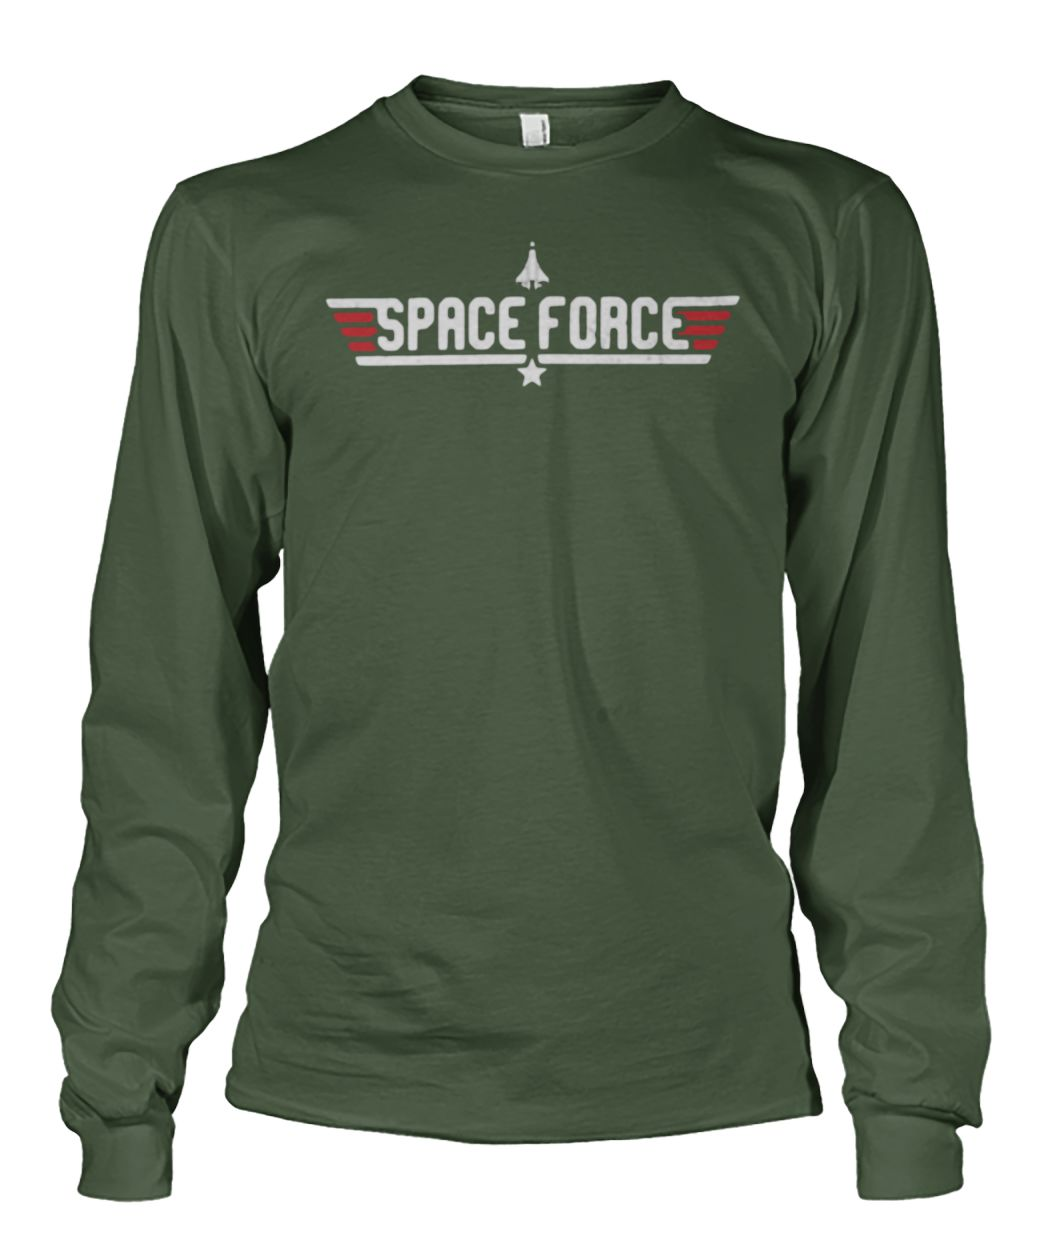 Space force fighter pilot unisex long sleeve